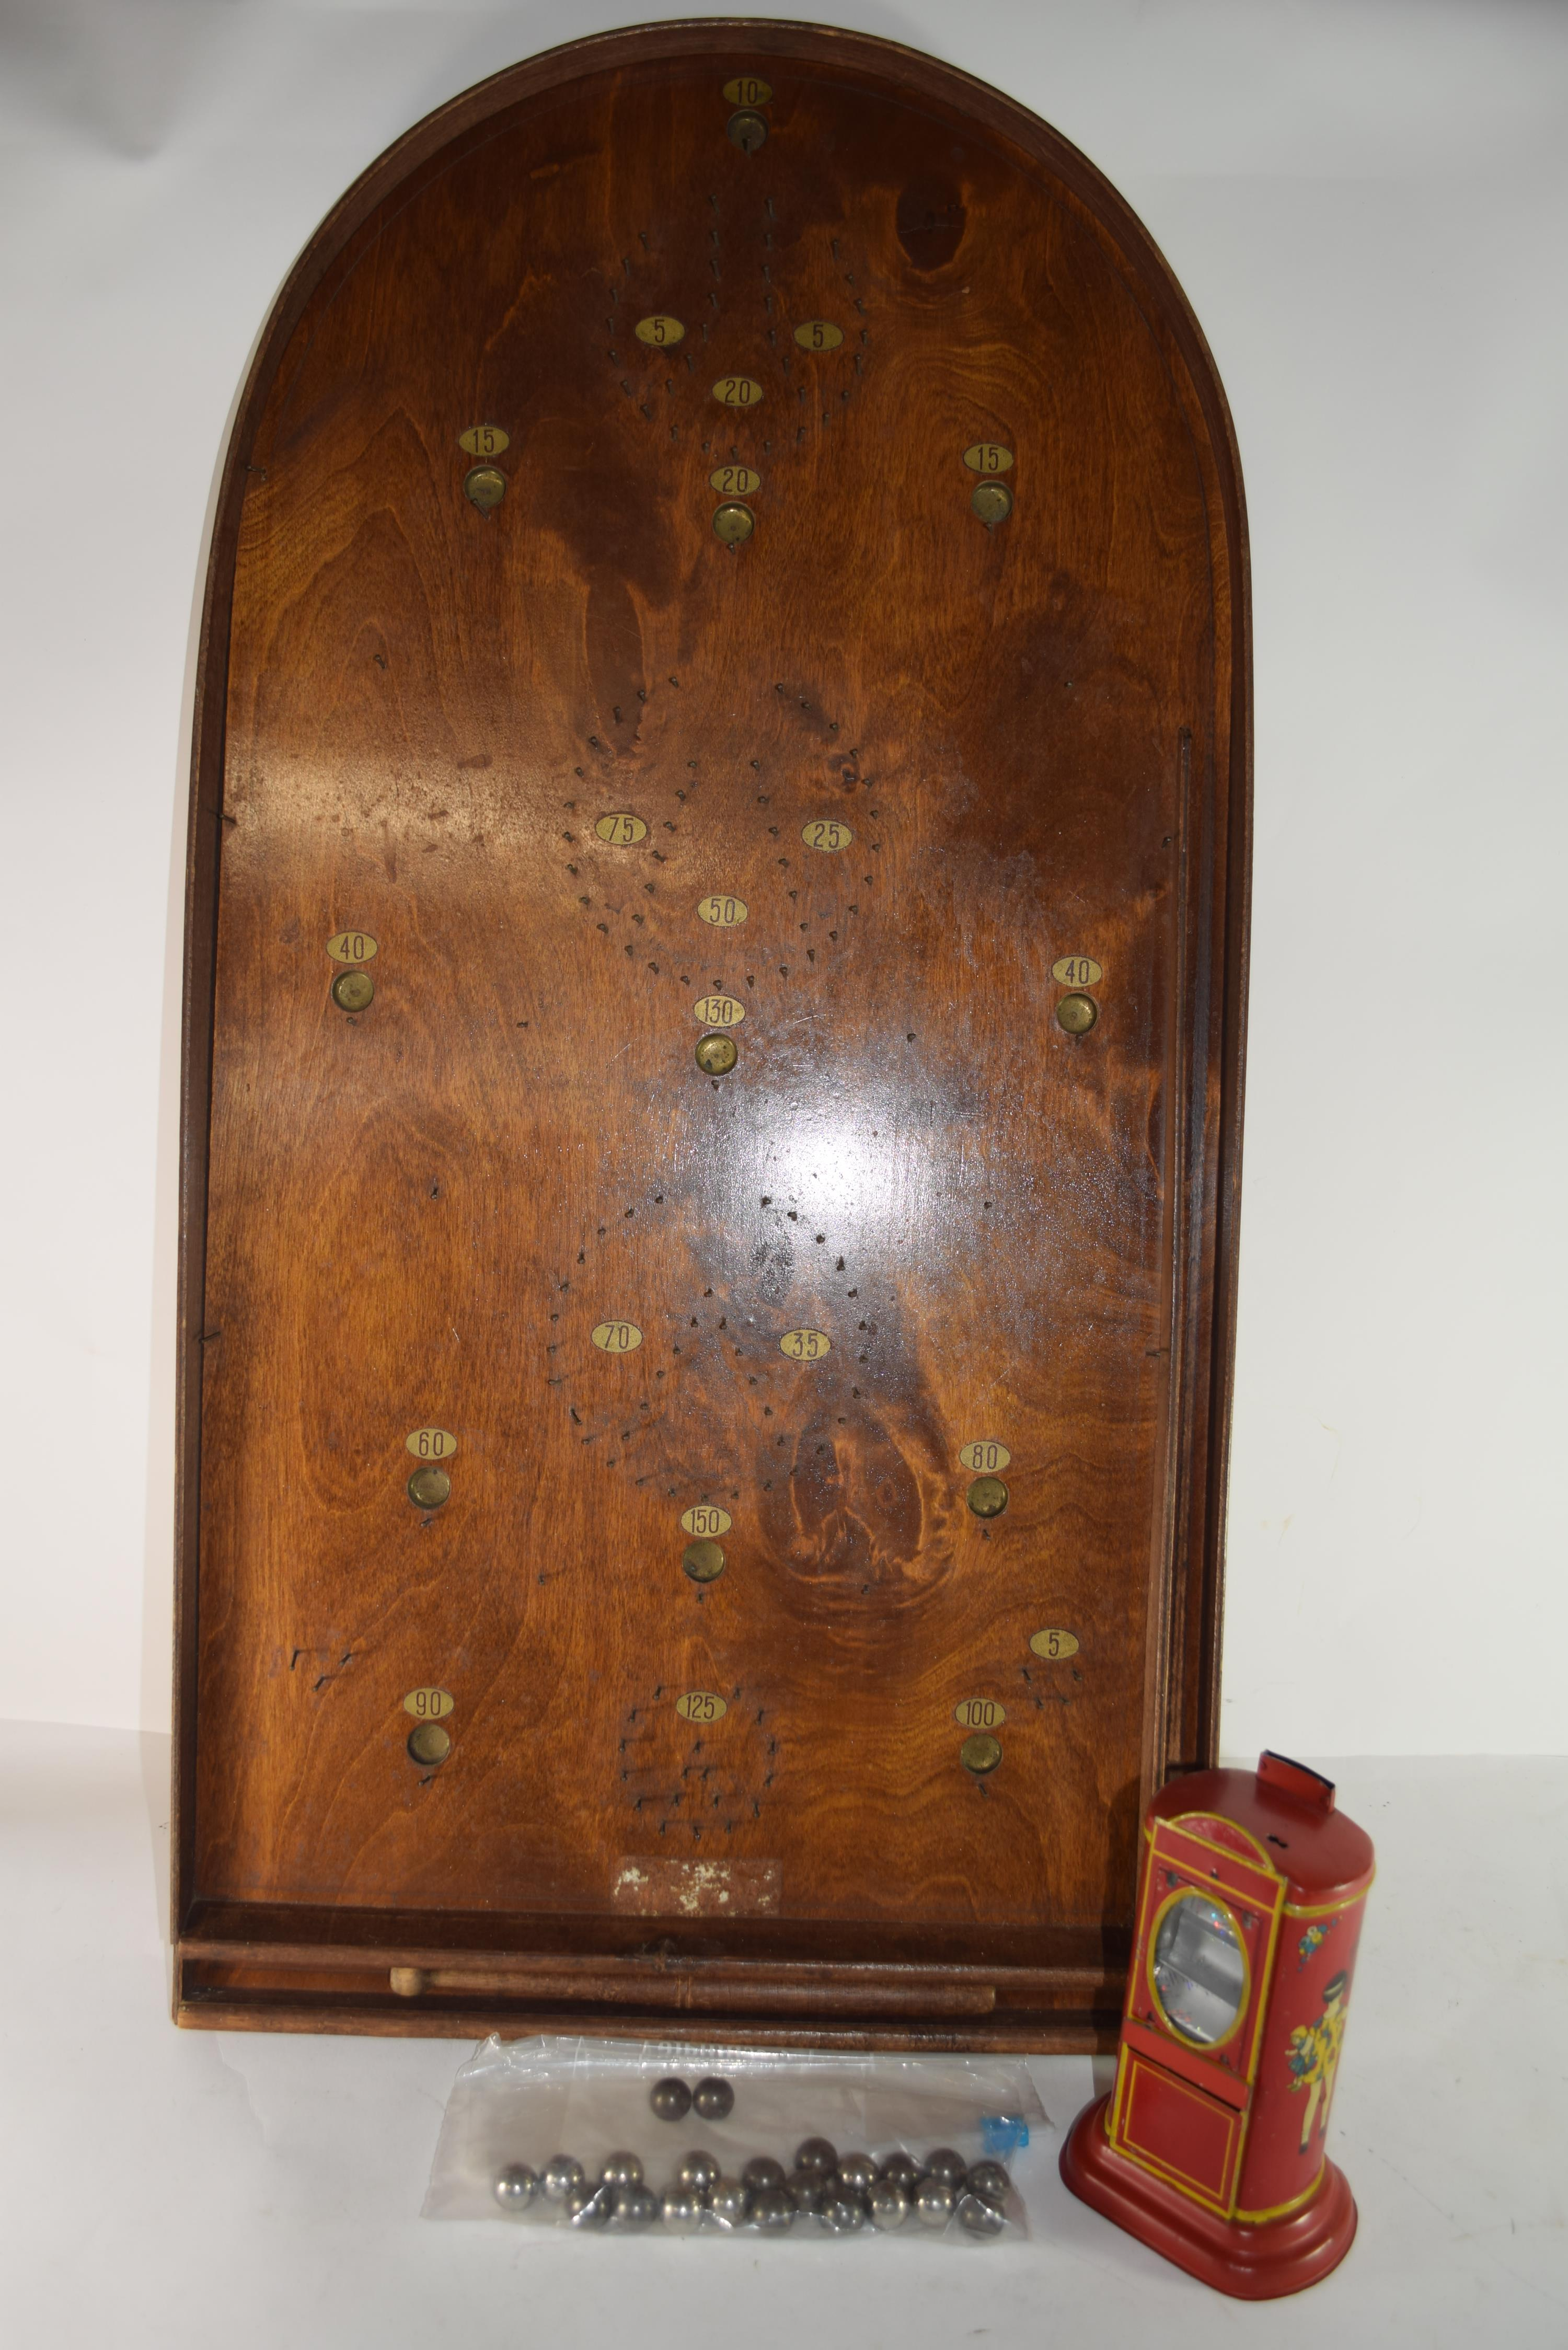 Wooden bagatelle game with silver balls, together with a 1930s child's money box